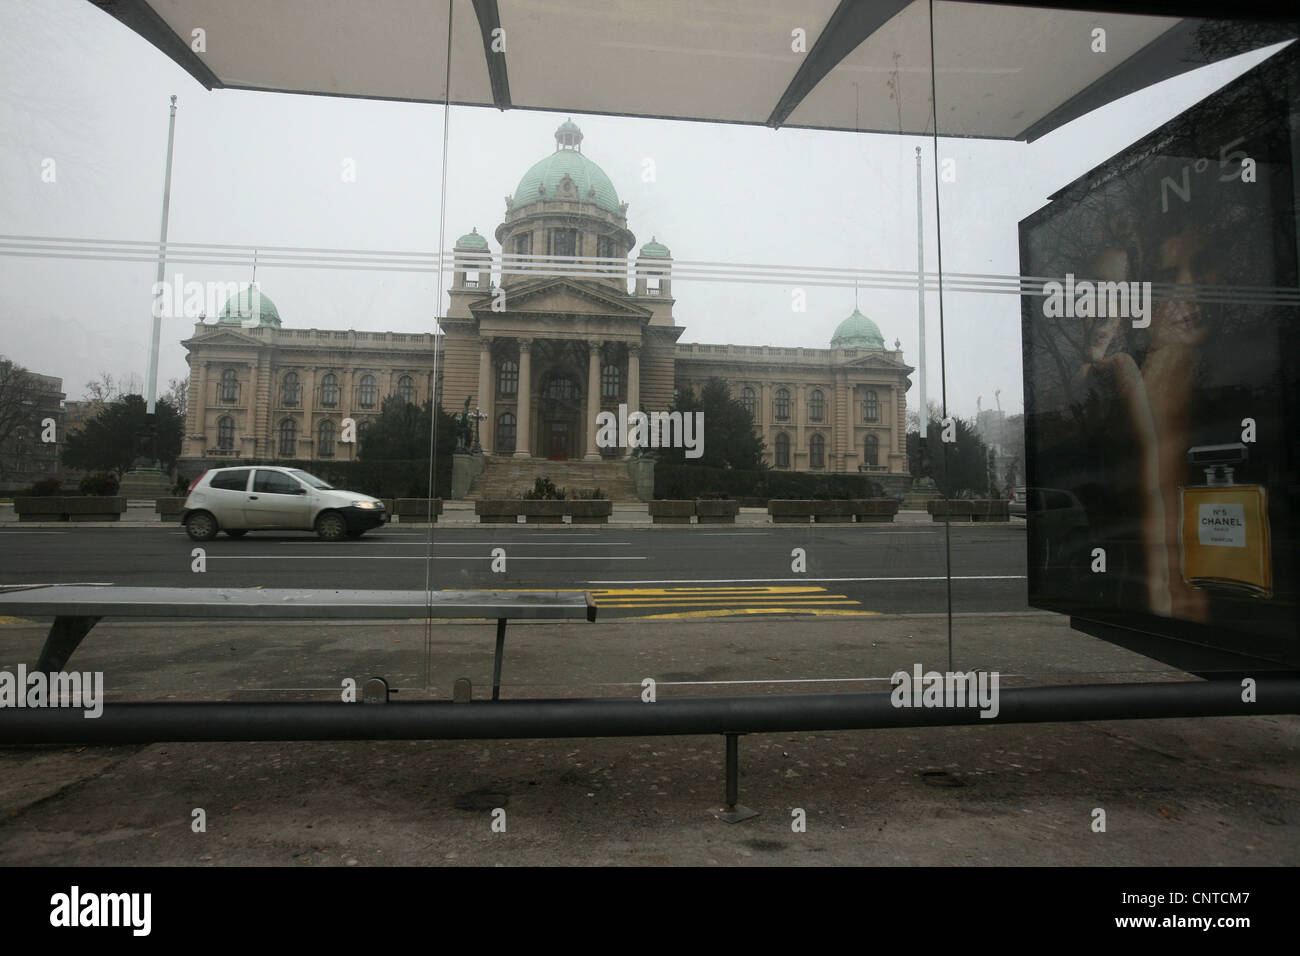 The House of the National Assembly of Serbia in Belgrade, Serbia - Stock Image